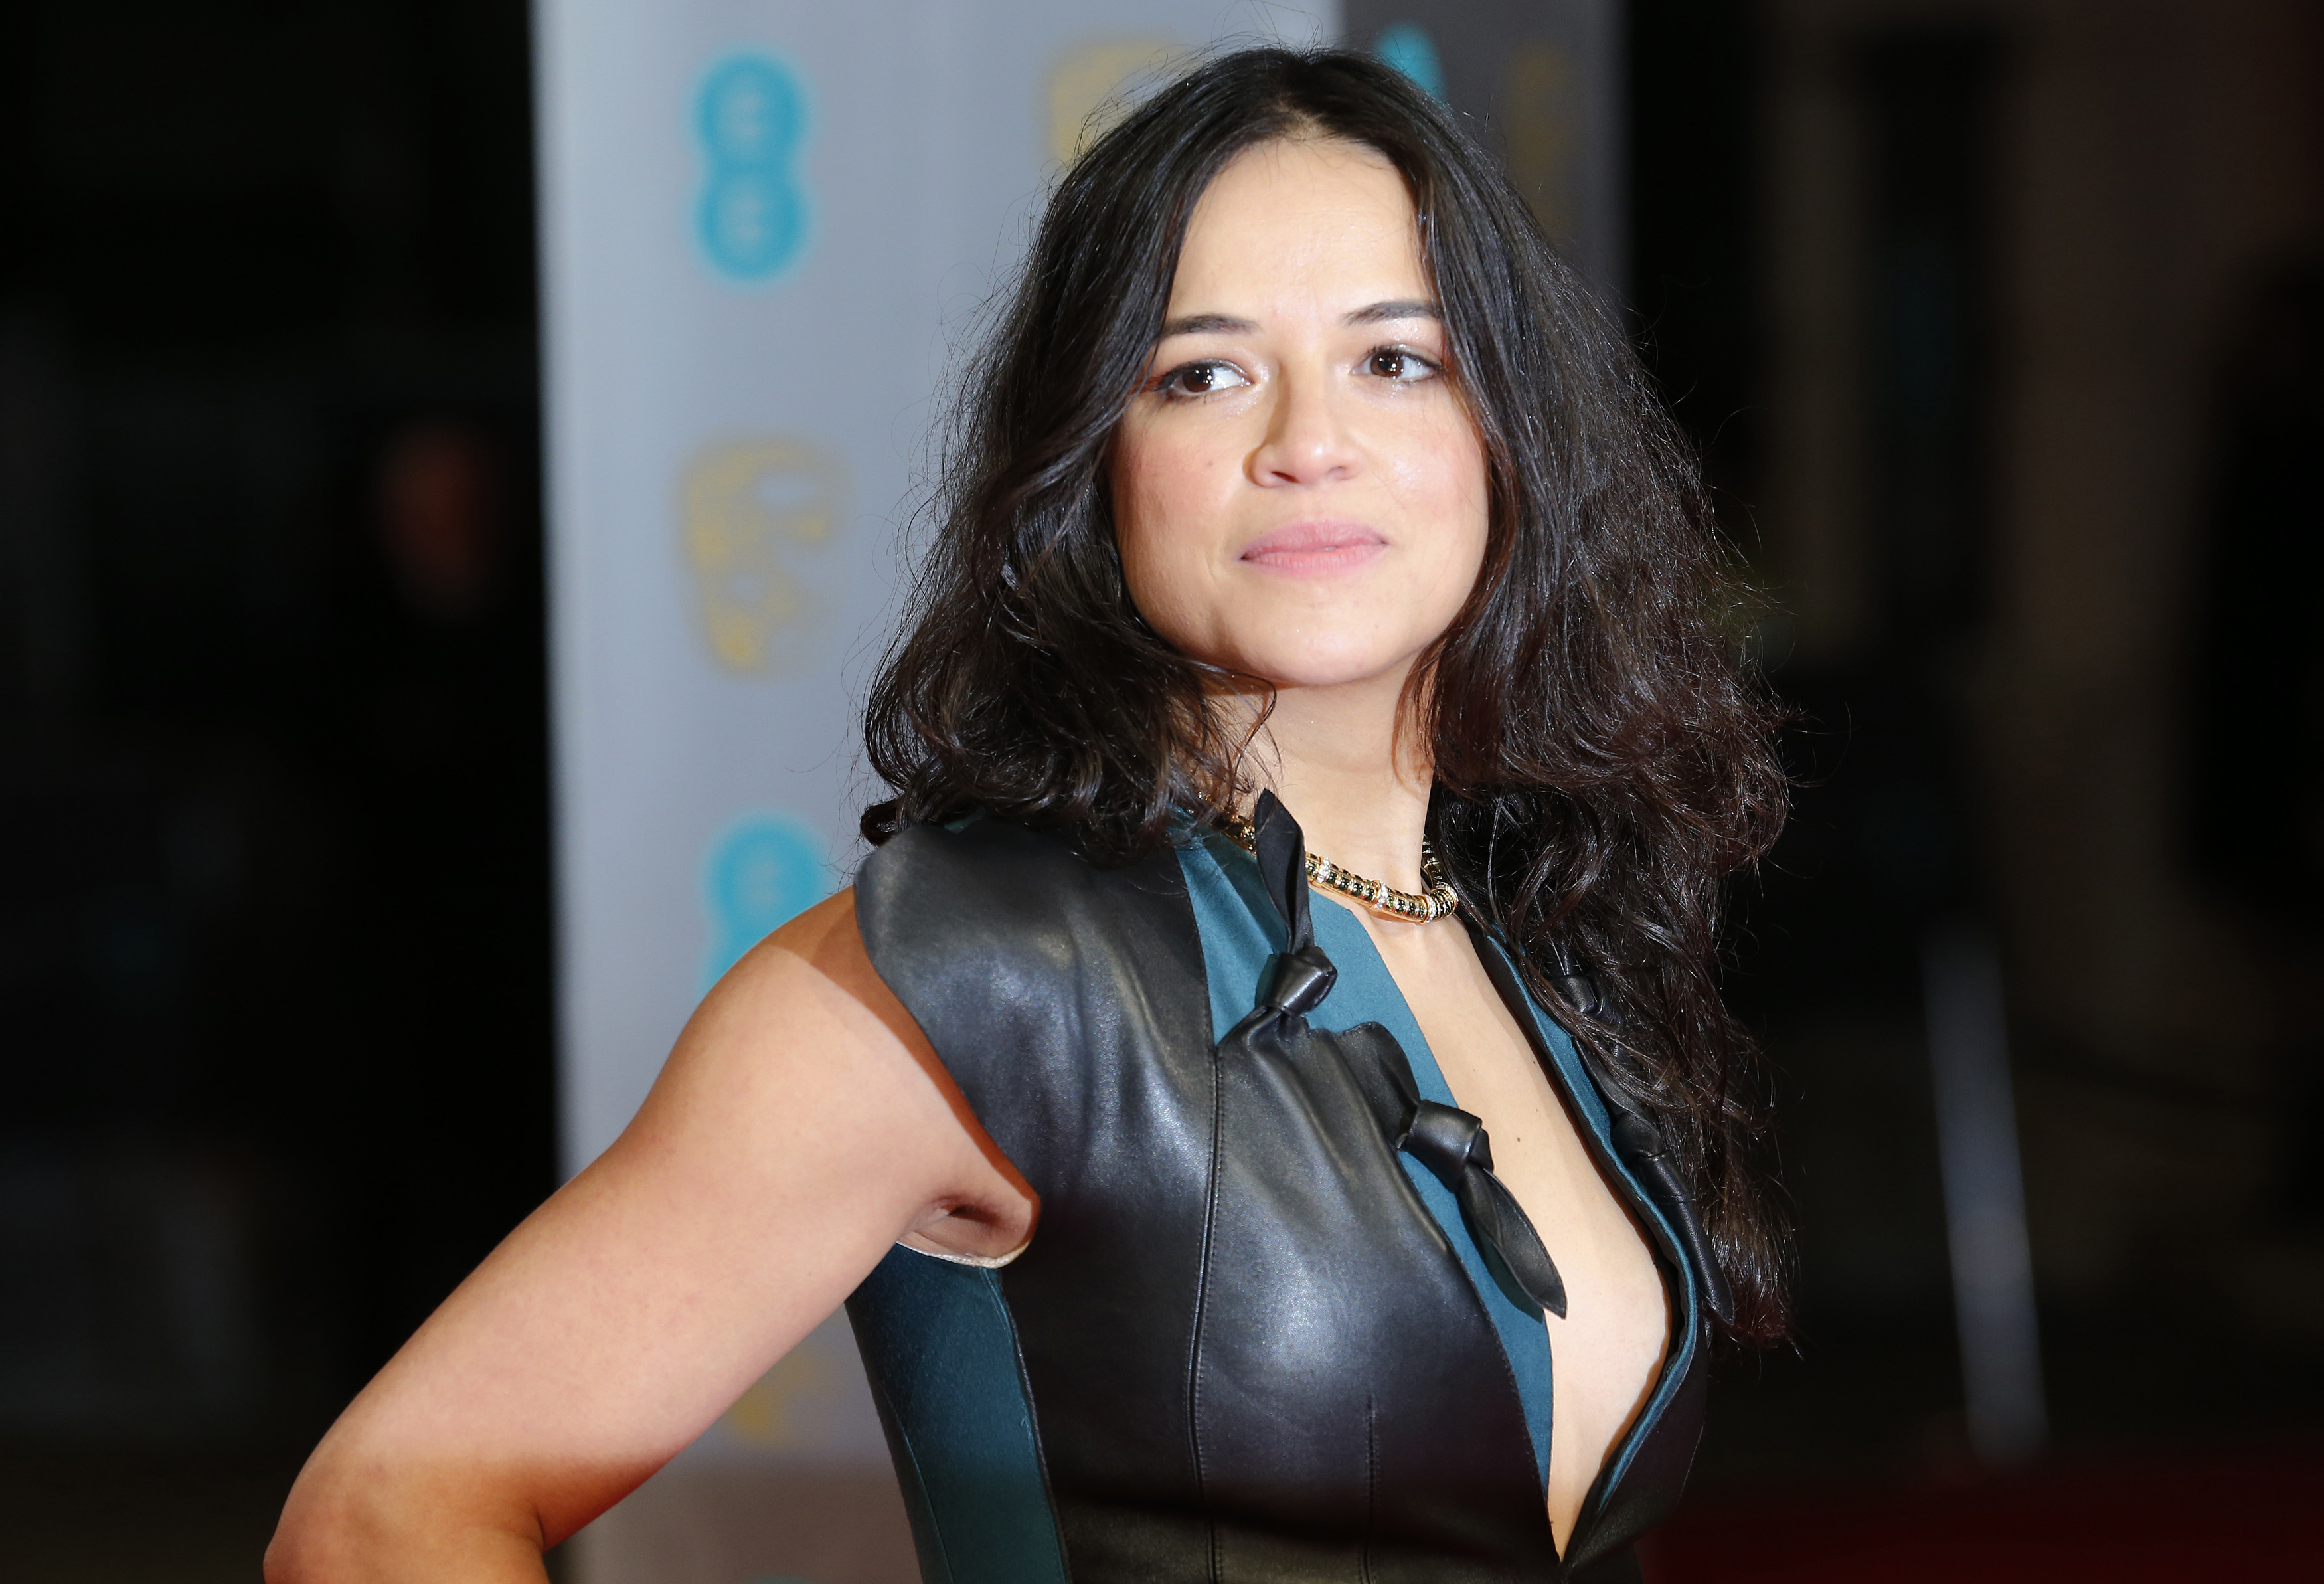 Michelle Rodriguez arrives at the BAFTA awards ceremony in London